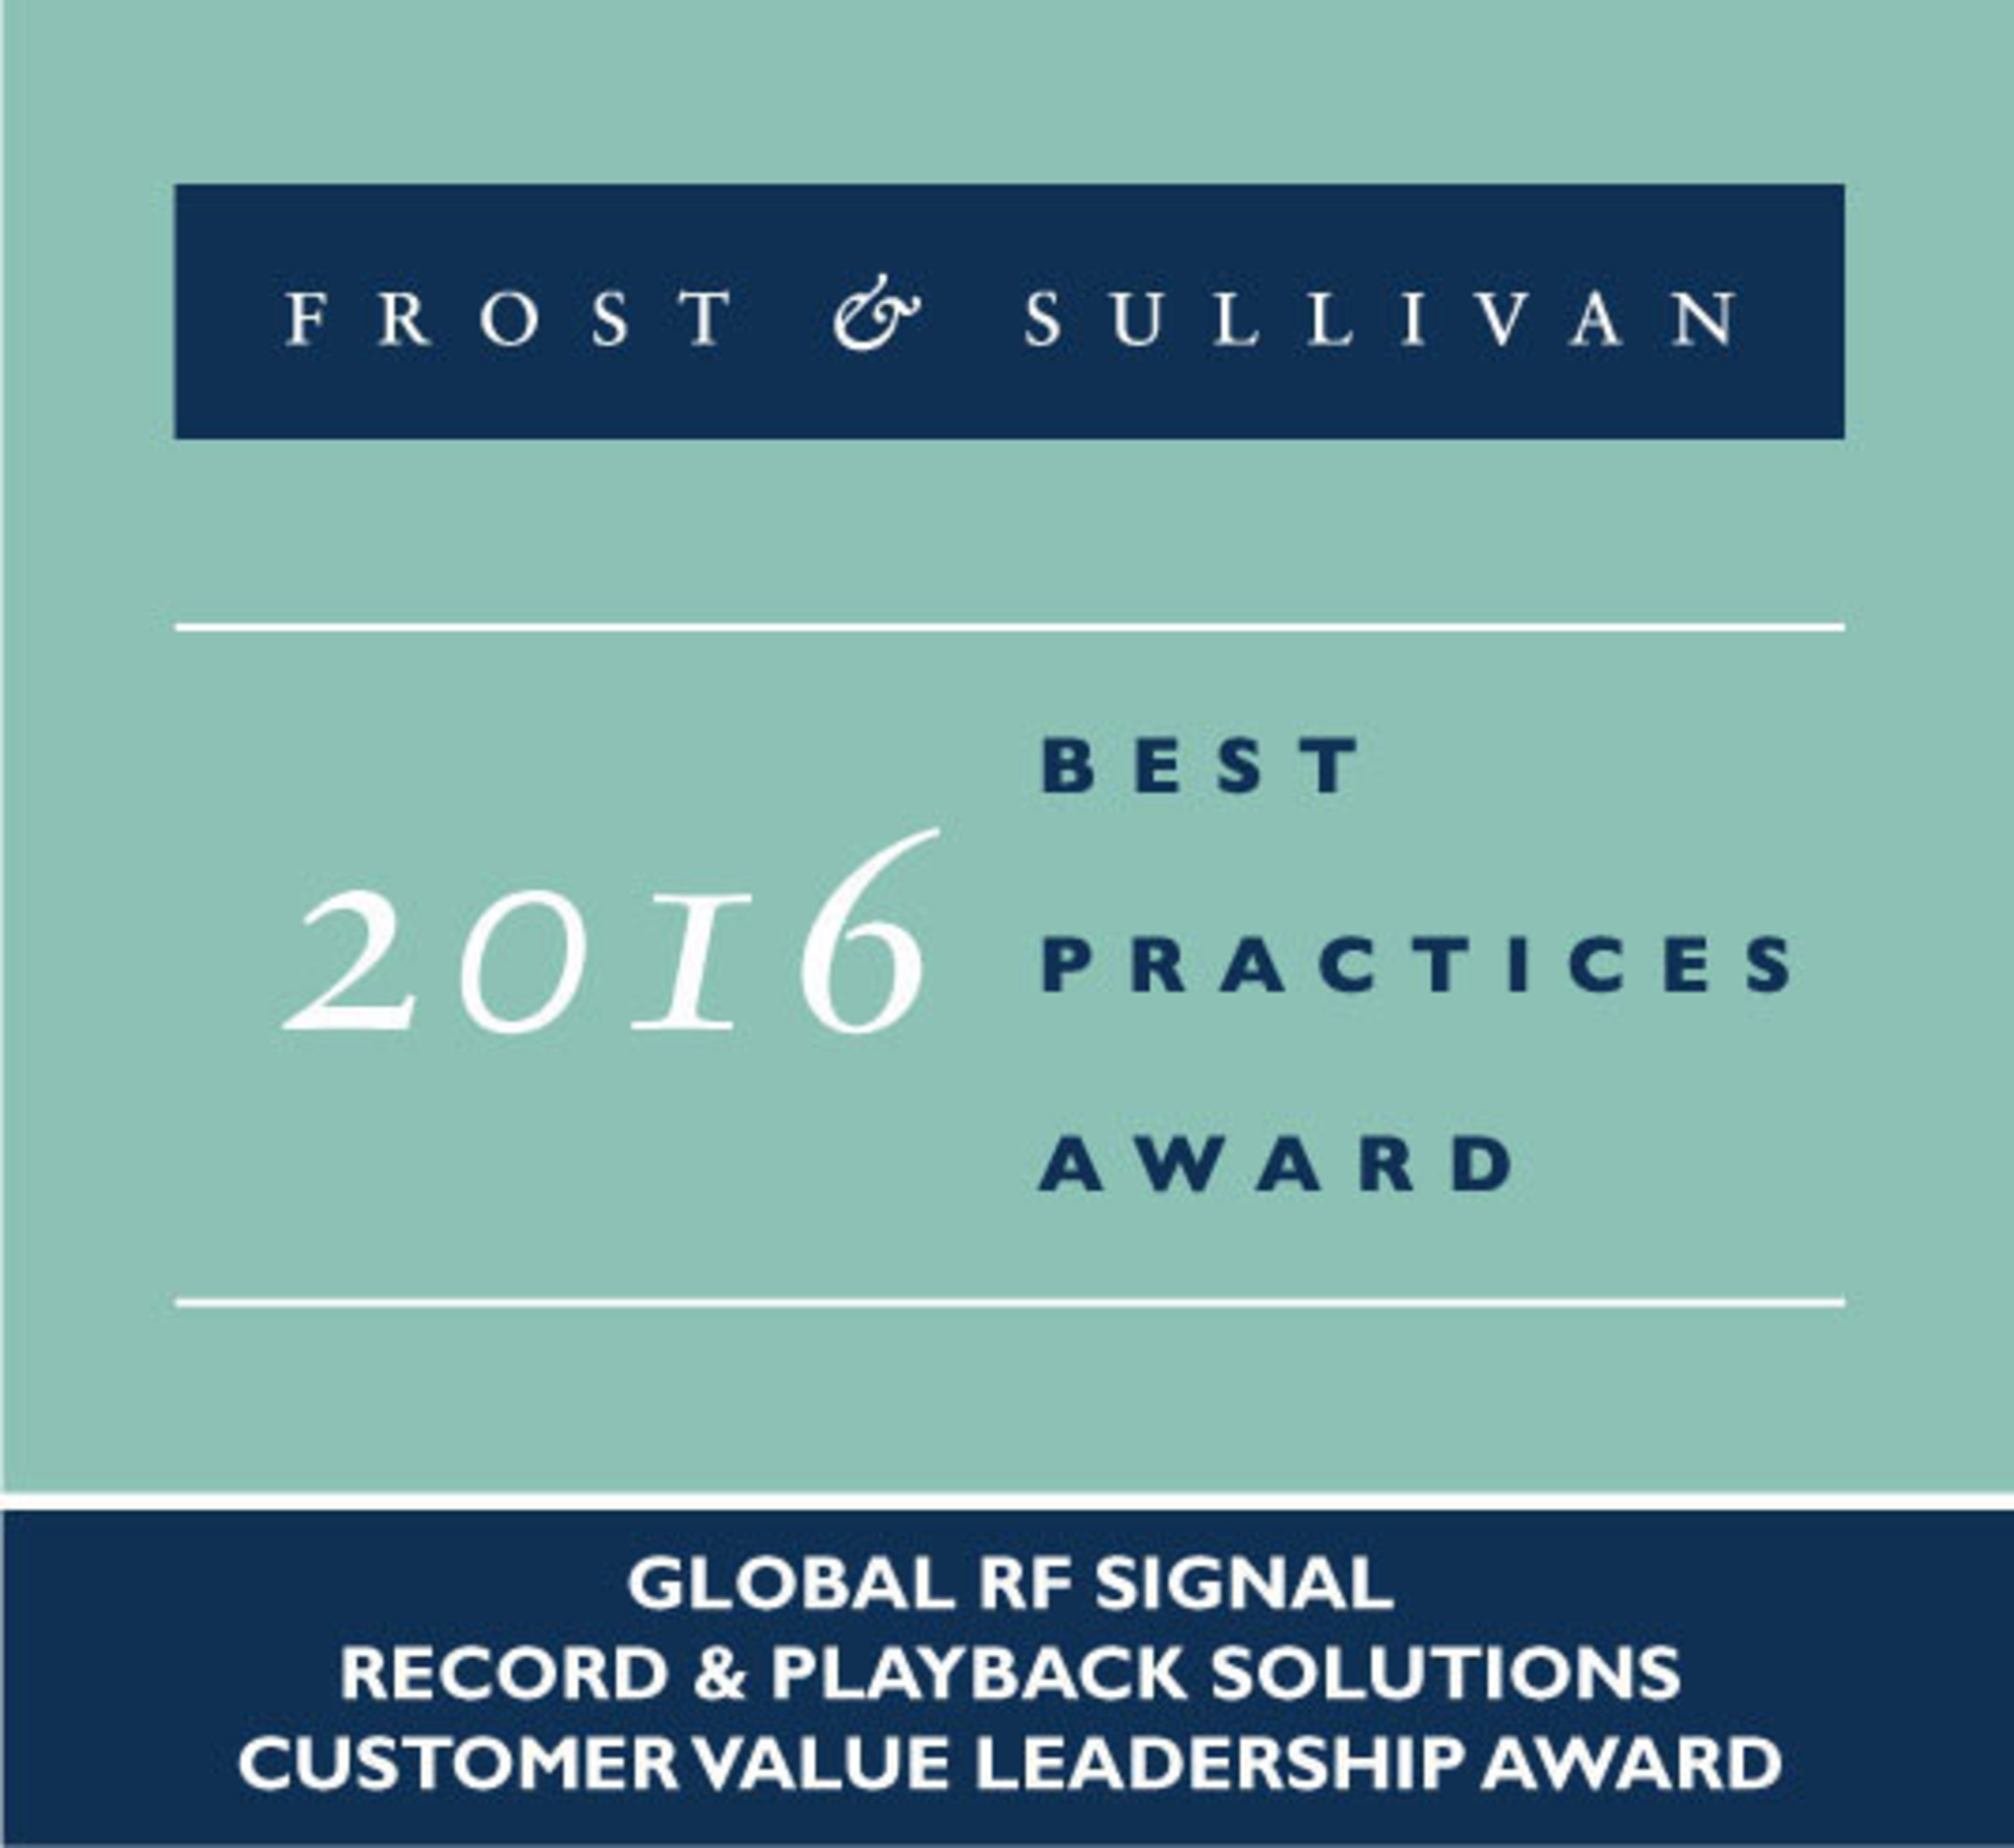 Averna Receives the 2016 Frost & Sullivan Global Leadership Award for Its RF Record and Playback Solutions